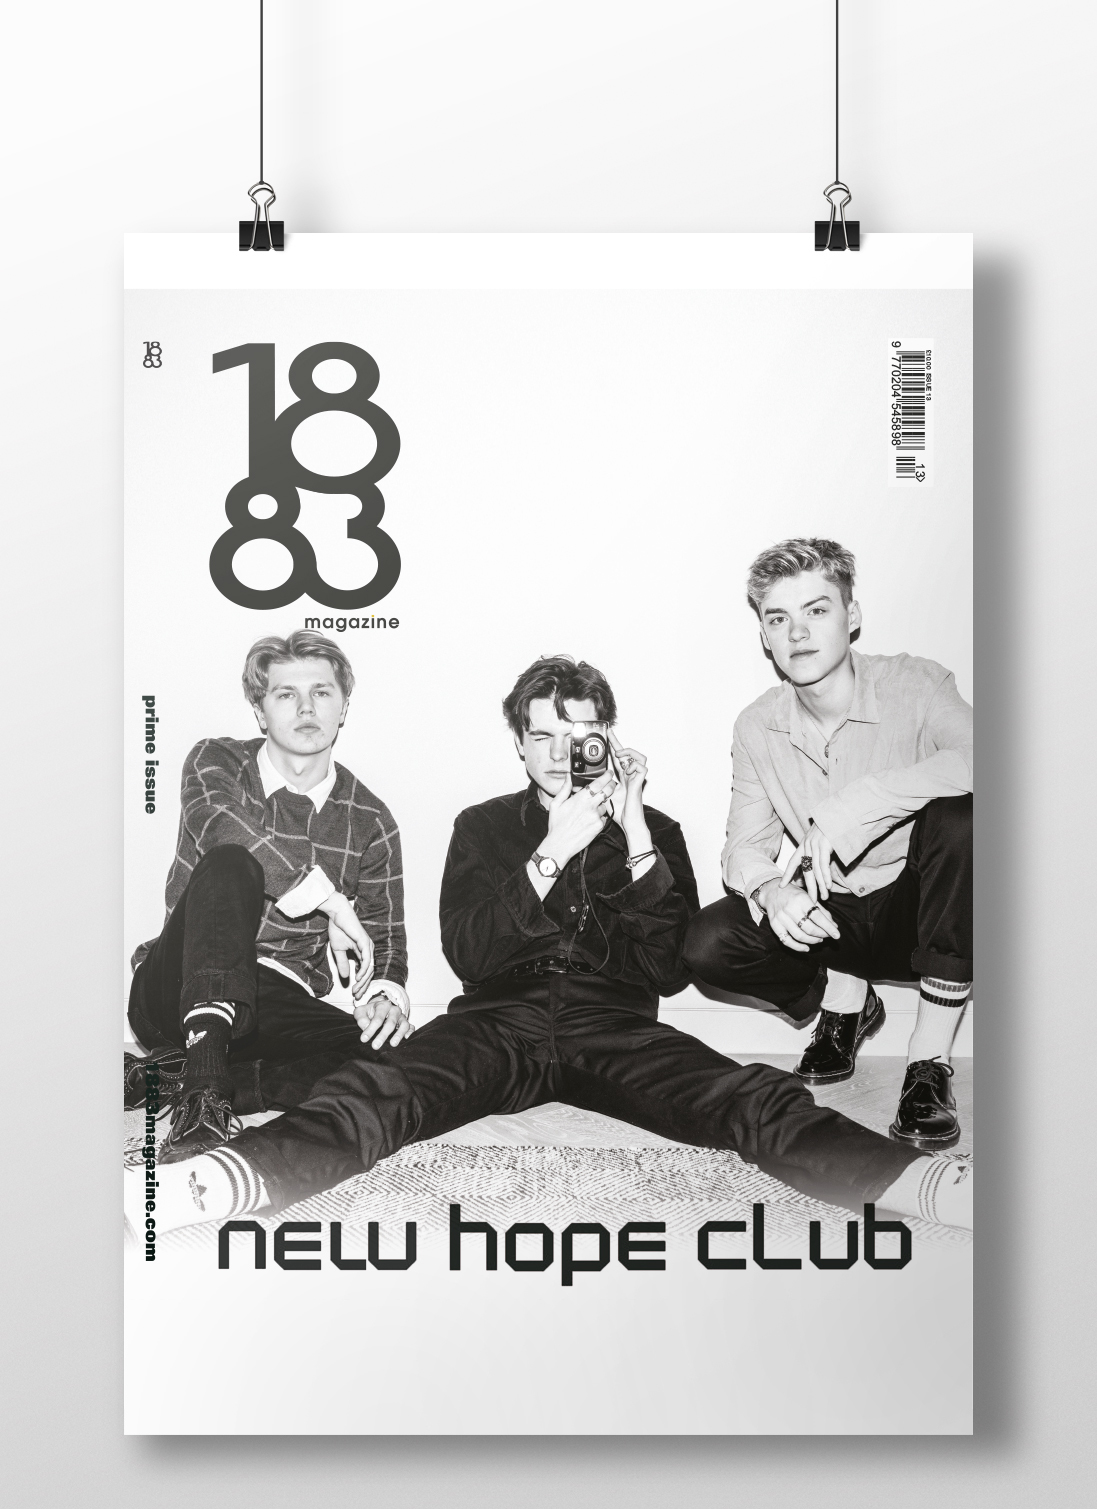 New Hope Club cover poster p4